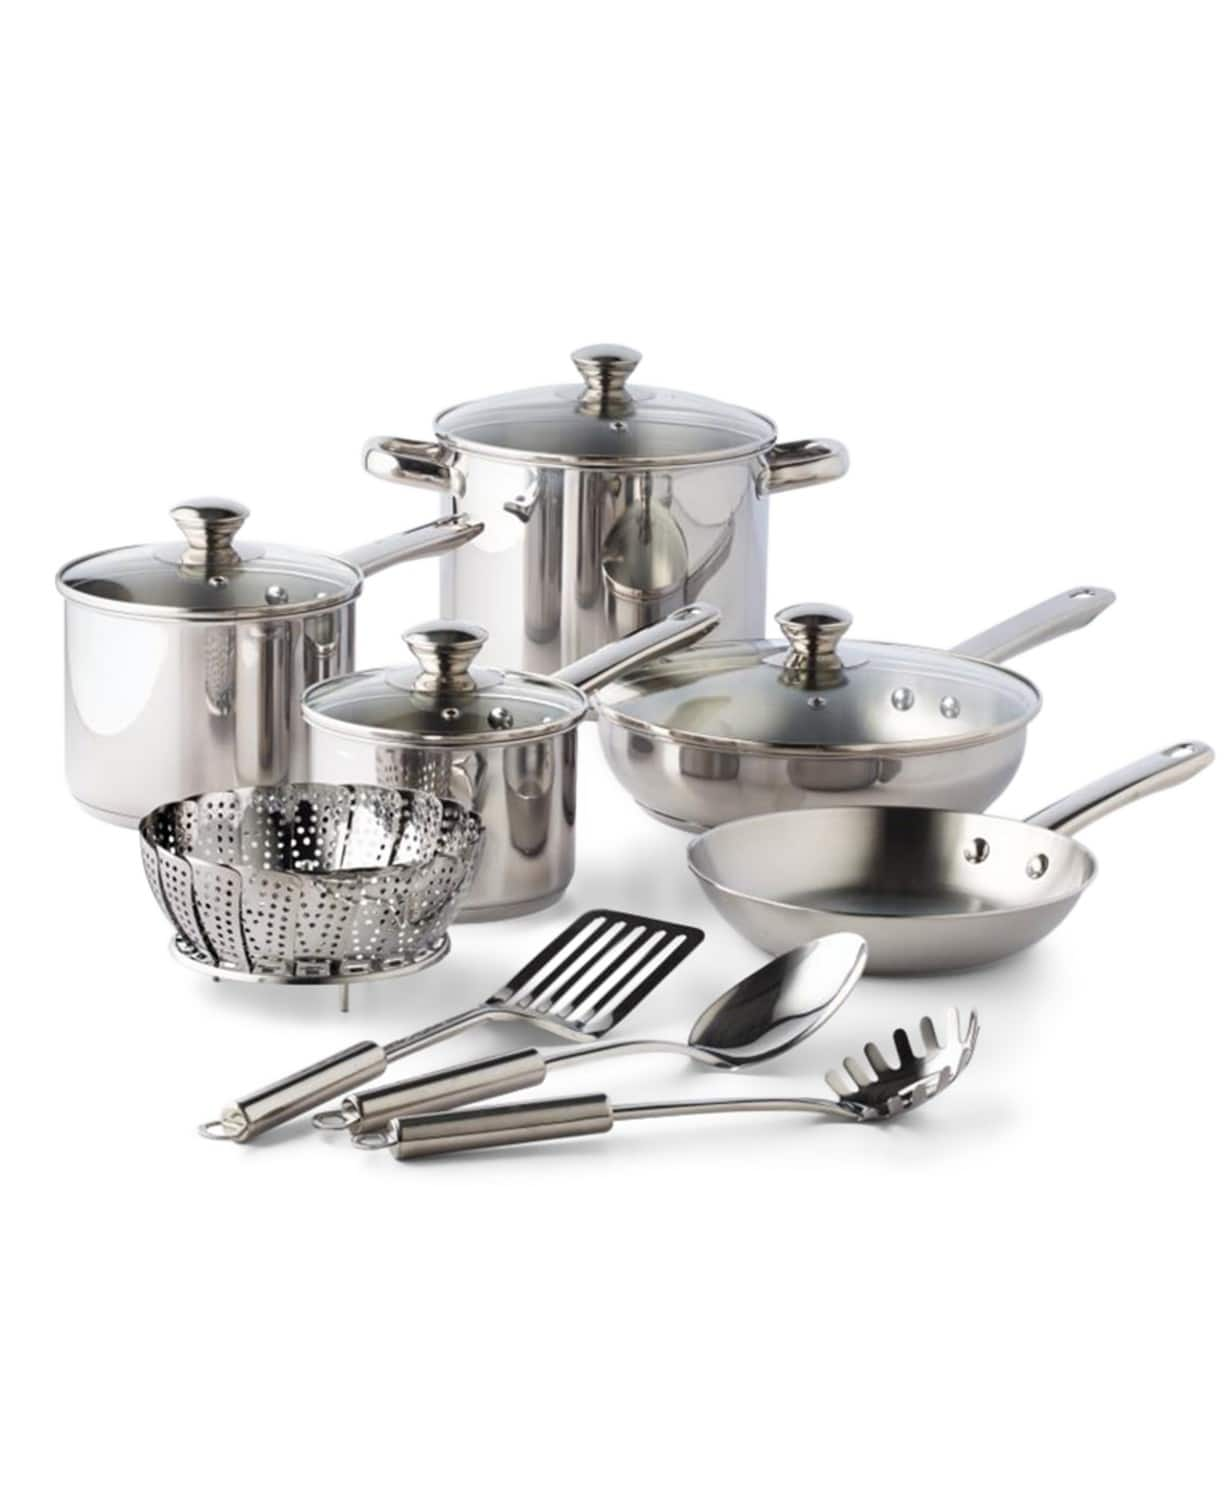 Stainless Steel 13-Pc. Cookware Set, Created for Macy's - $29.99 + free ship